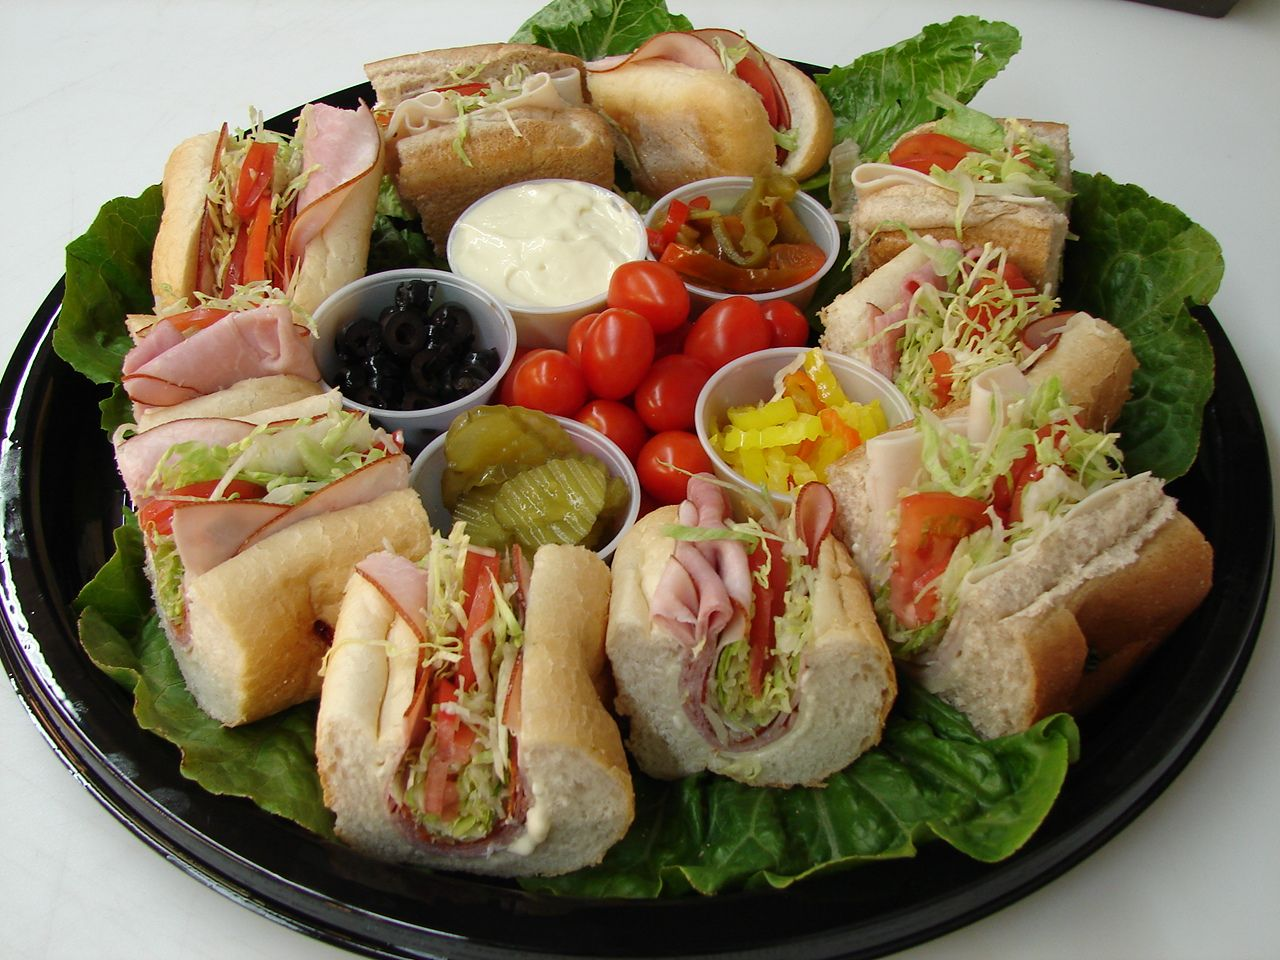 Party Planning: Make DIY Sandwich Platters | Cater-Hater | Party ...